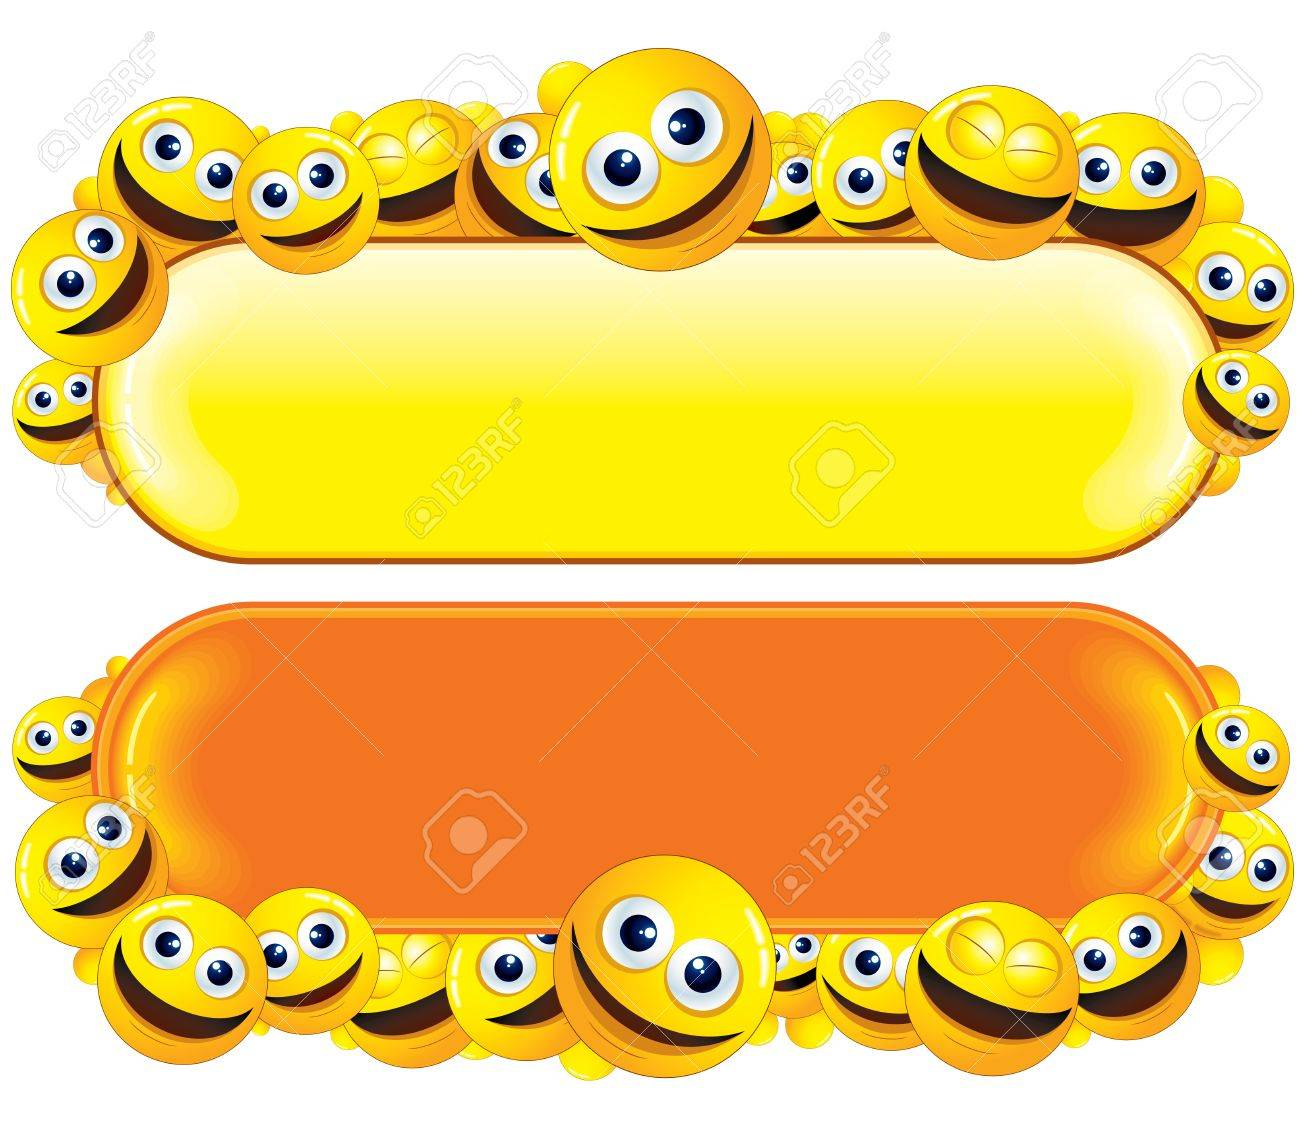 Funny Banner with Smiley Faces Stock Photo - 22956350